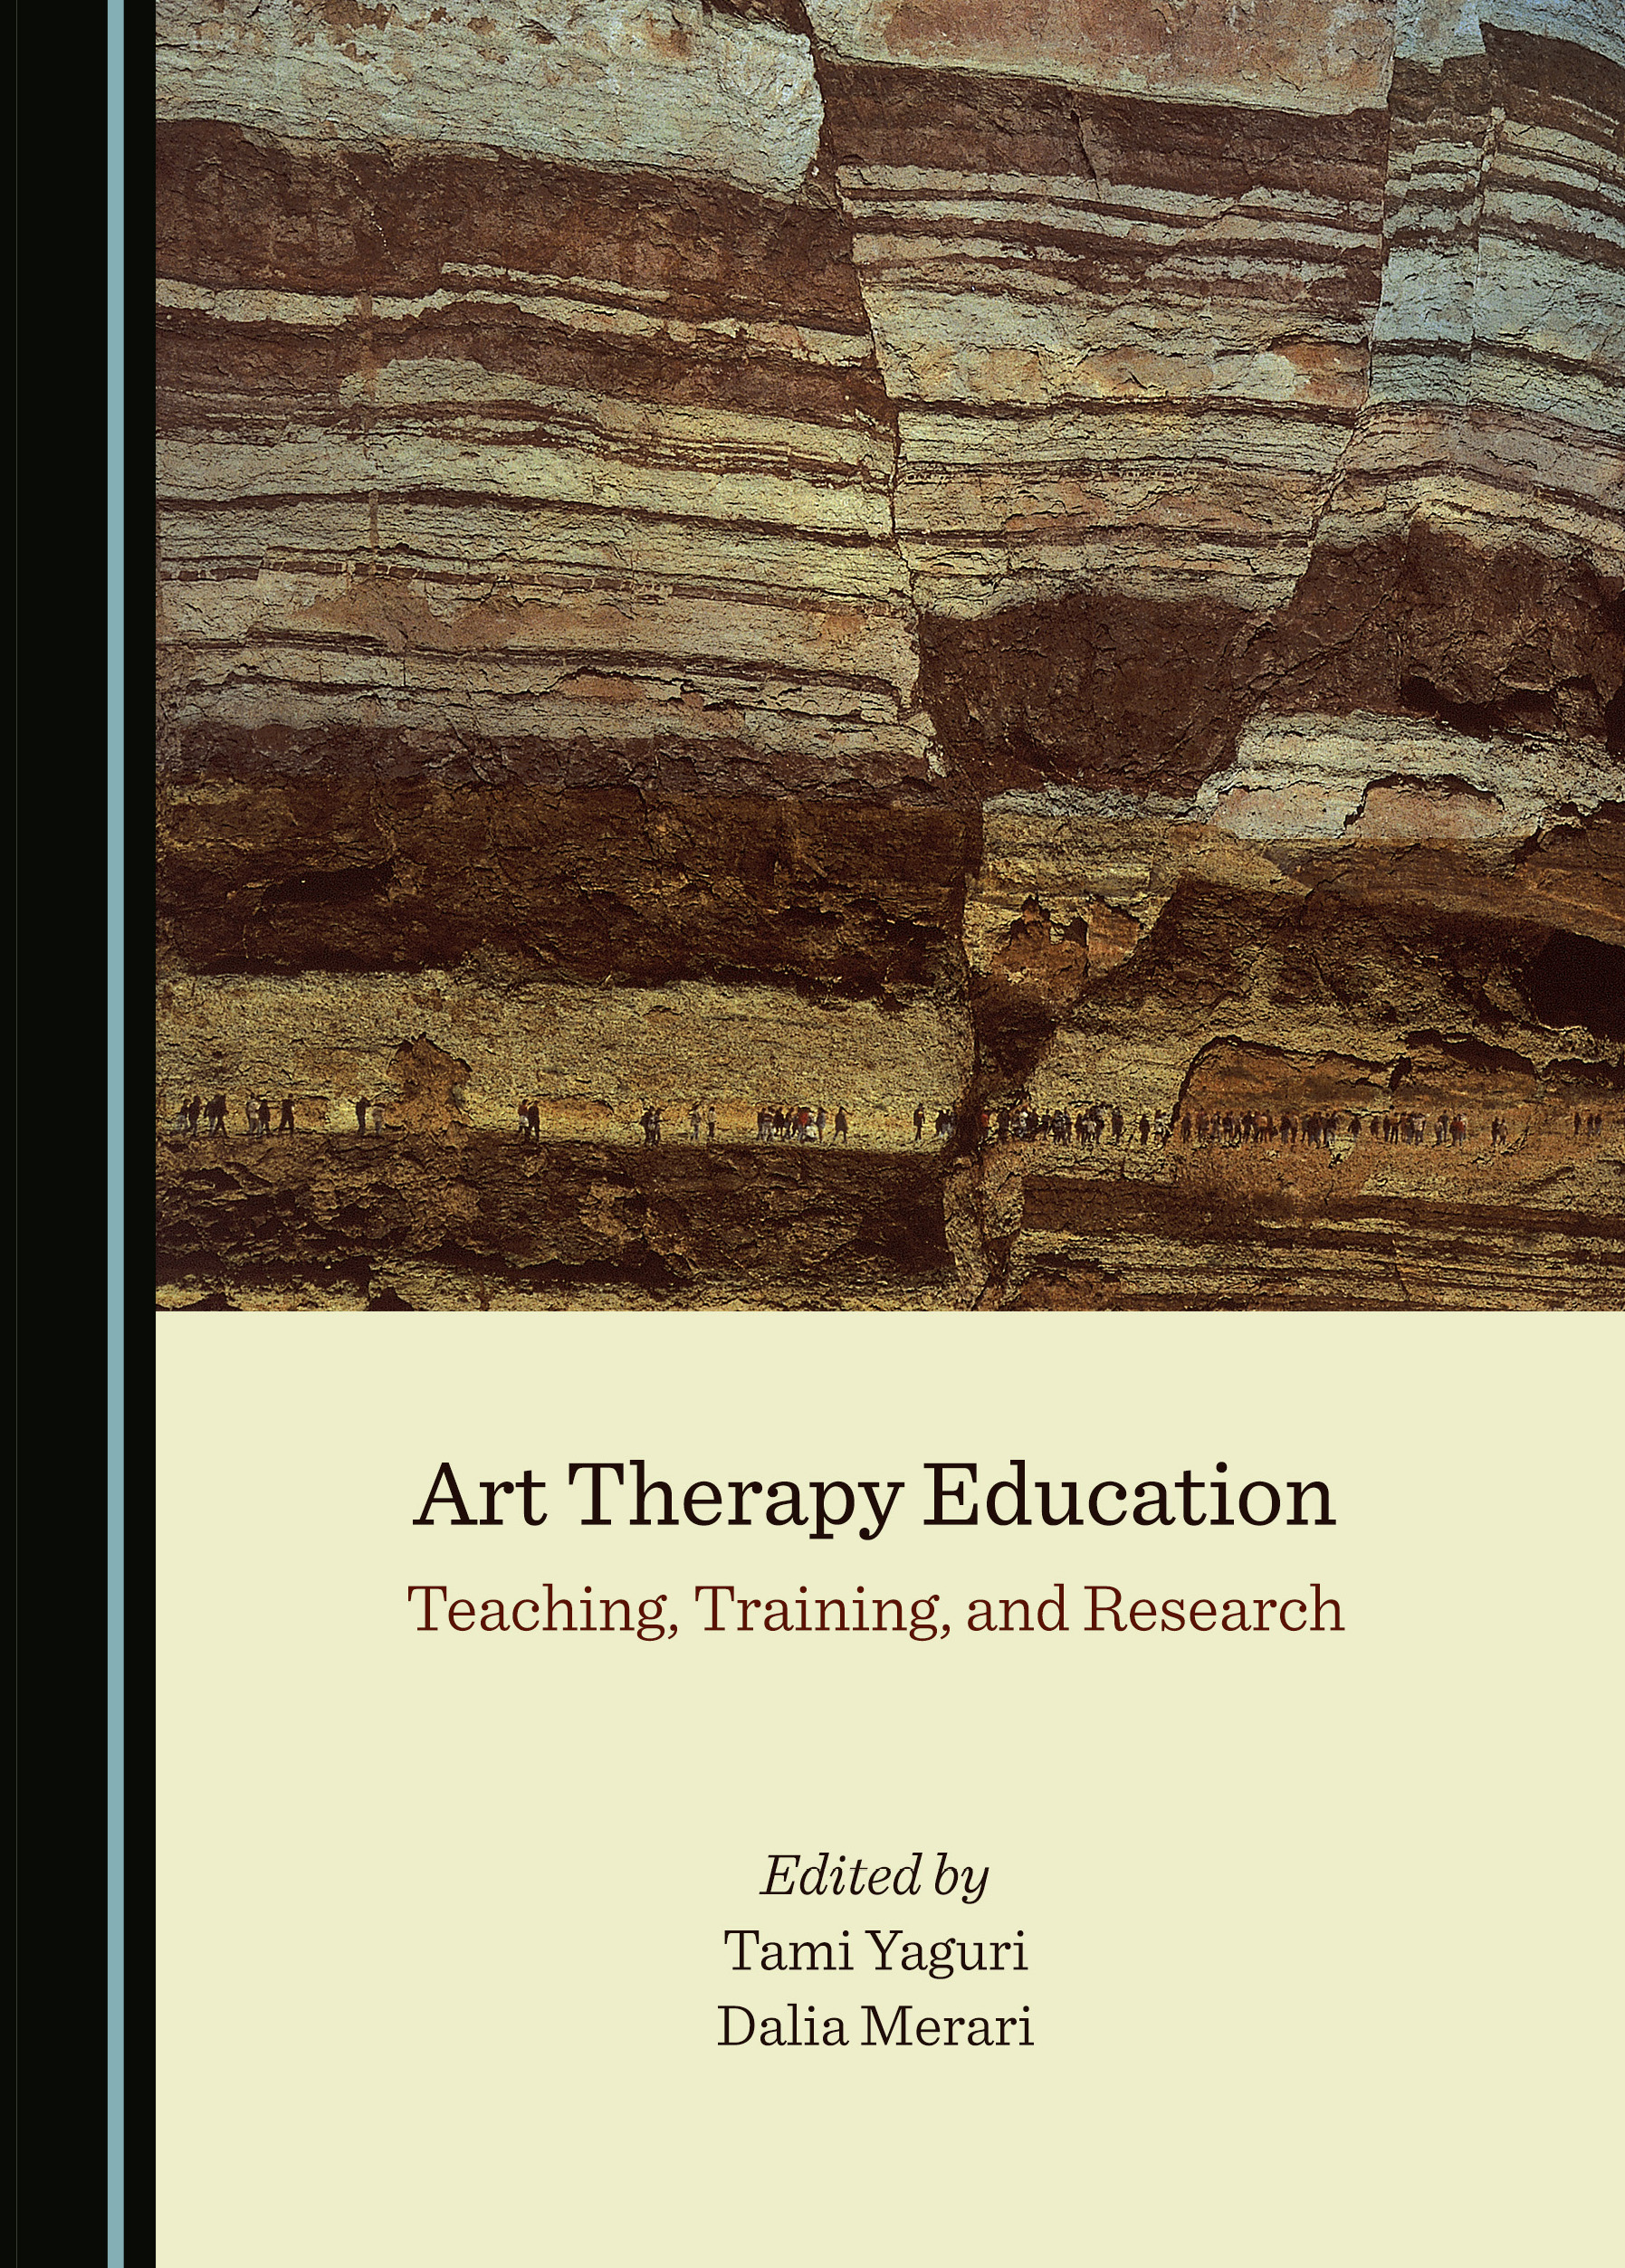 Art Therapy Education: Teaching, Training, and Research